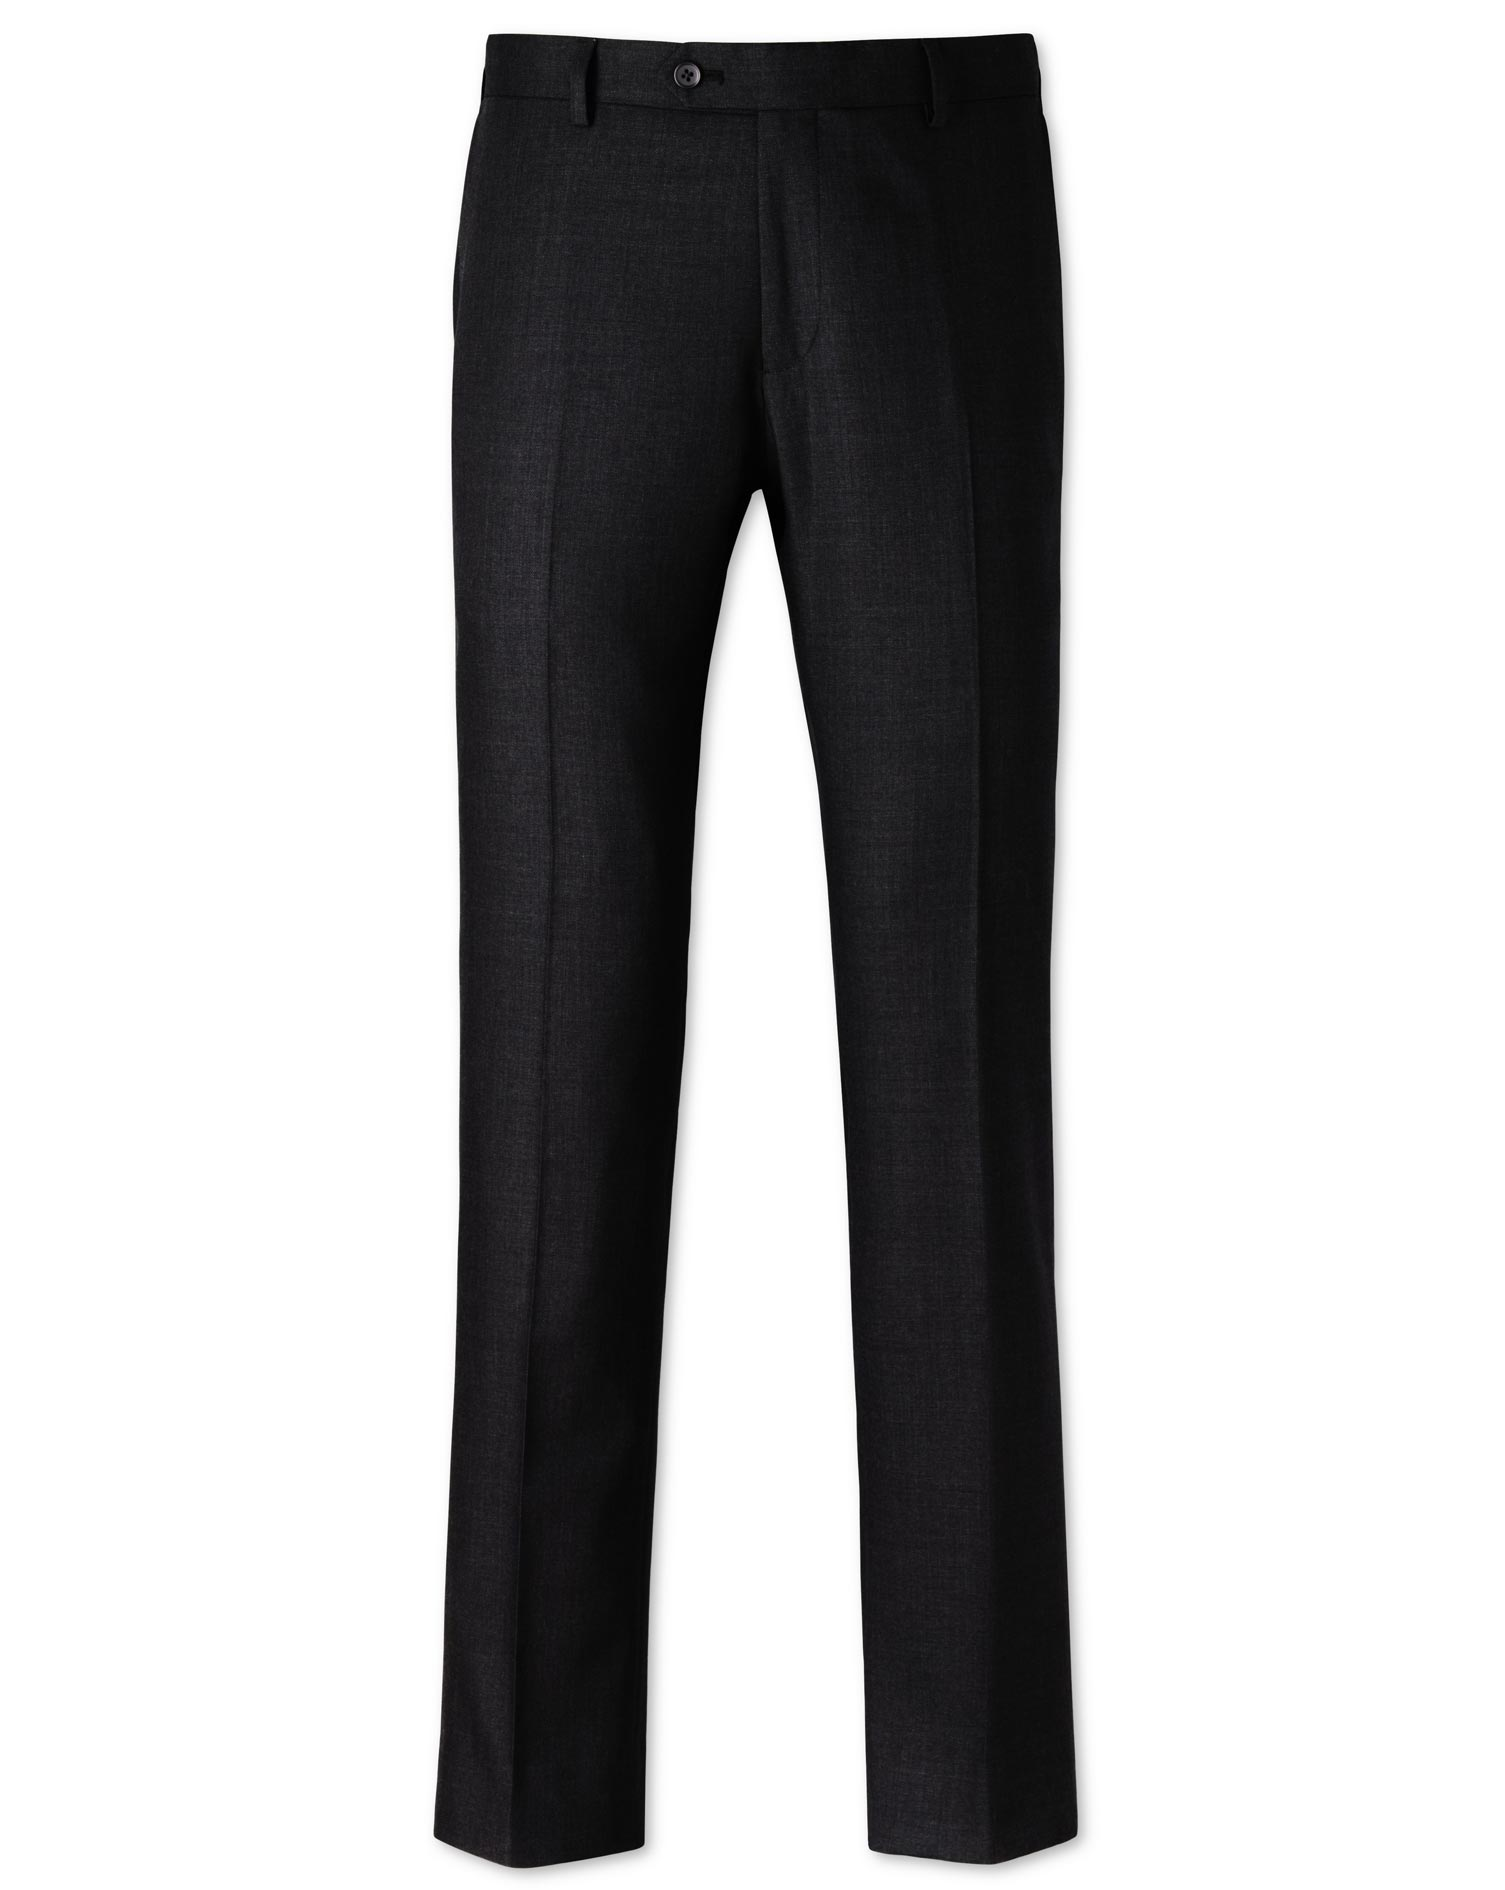 Charcoal Slim Fit Business Suit Trousers Size W40 L38 by Charles Tyrwhitt